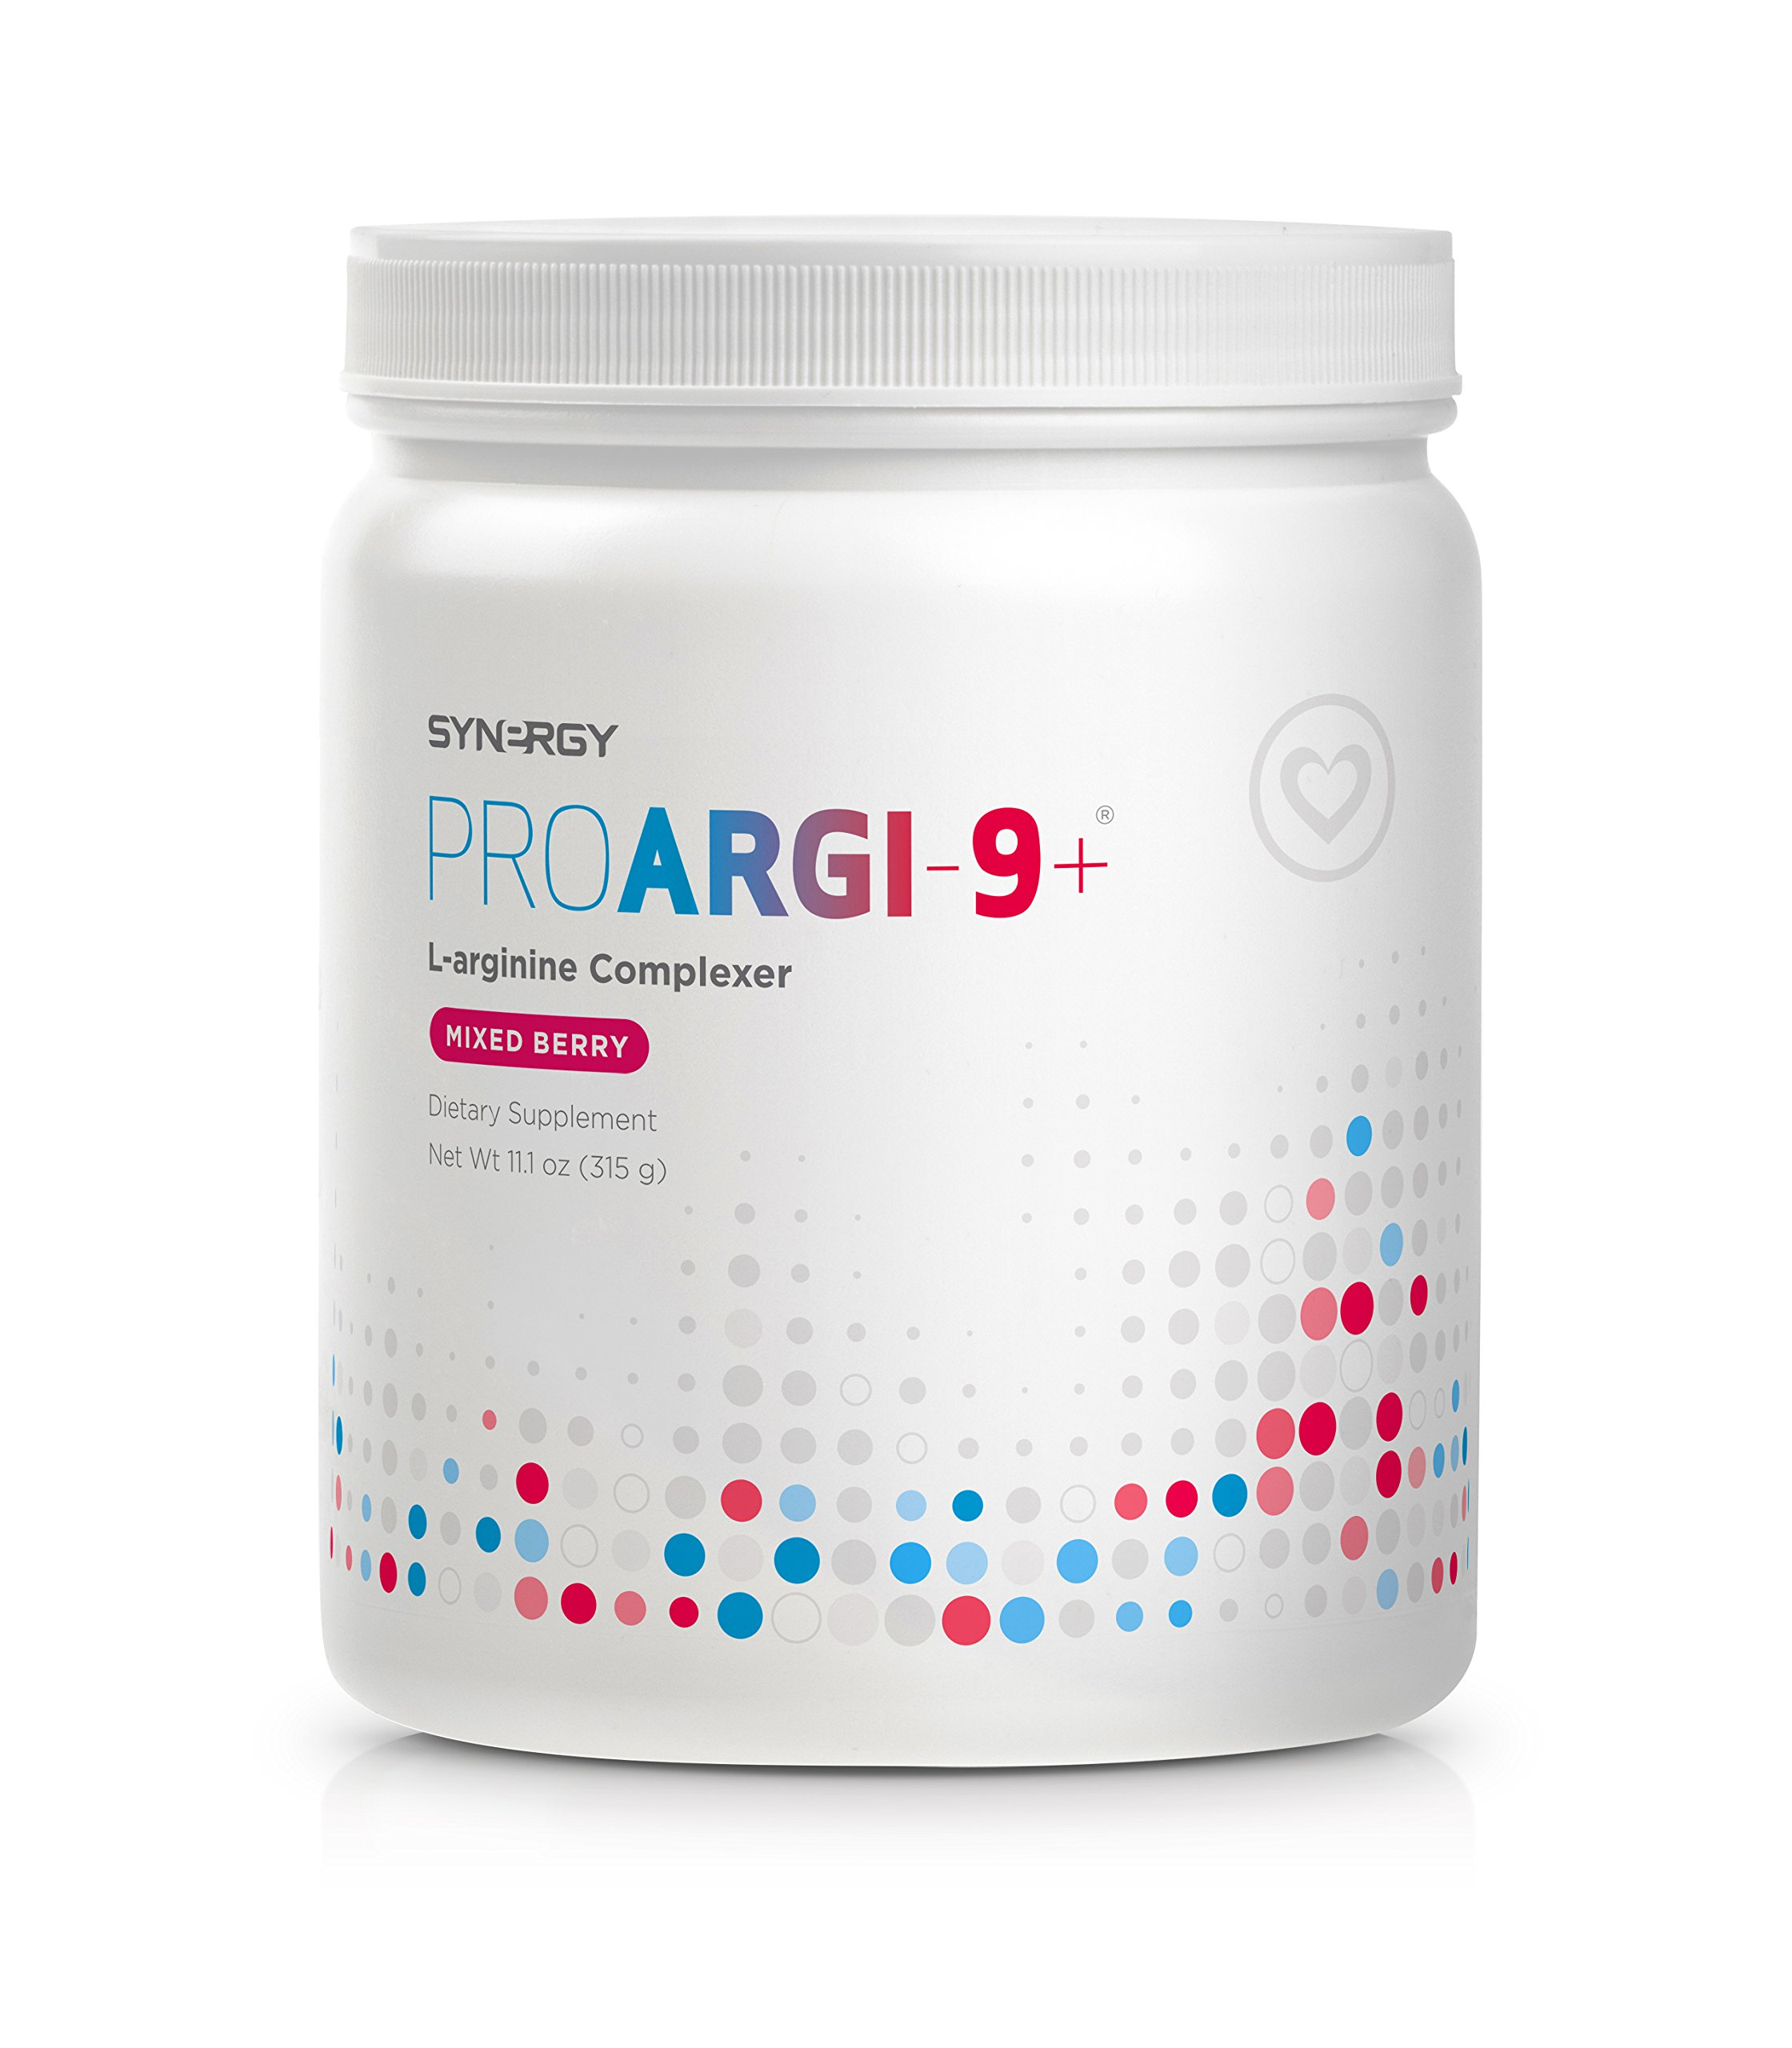 ProArgi 9 Plus New Flavor Mixed Berry 1 Jar,11.1 oz by Synergy Worldwide (Image #1)